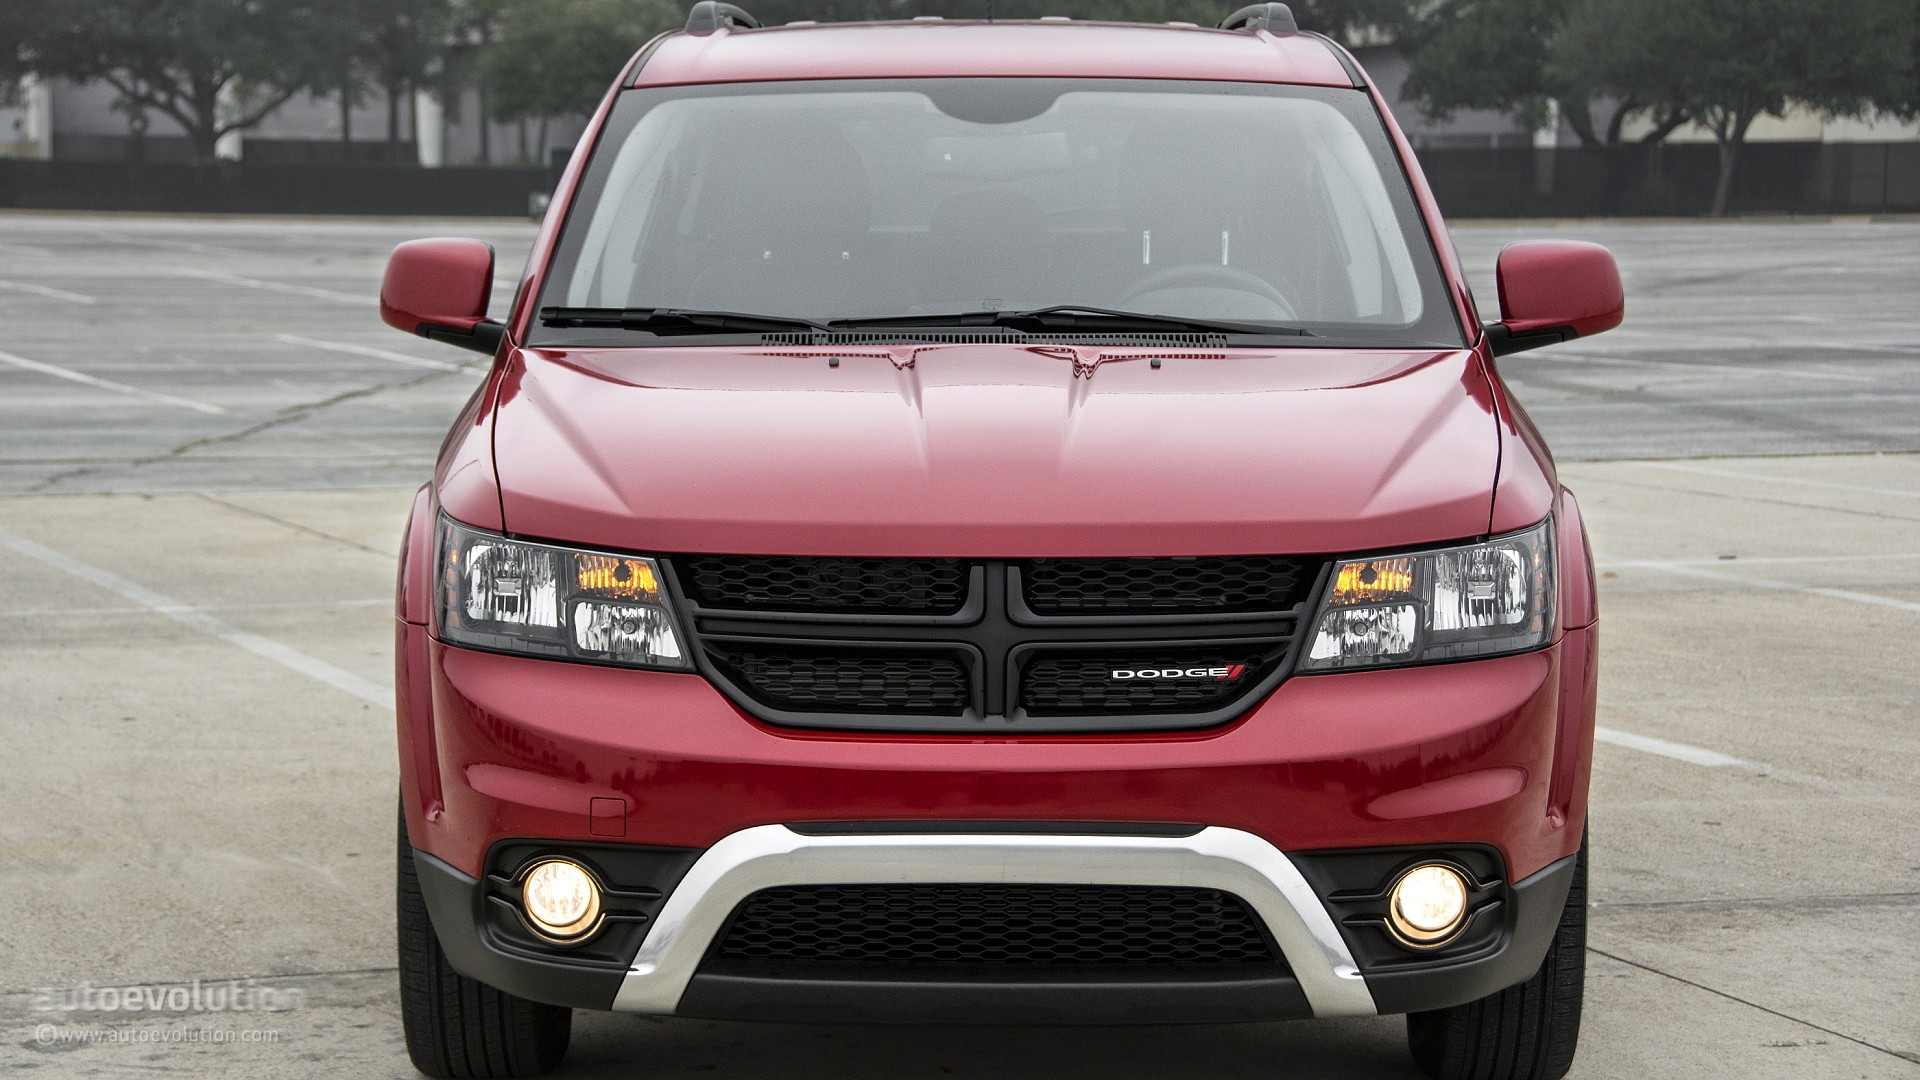 2015 dodge journey review autoevolution. Cars Review. Best American Auto & Cars Review